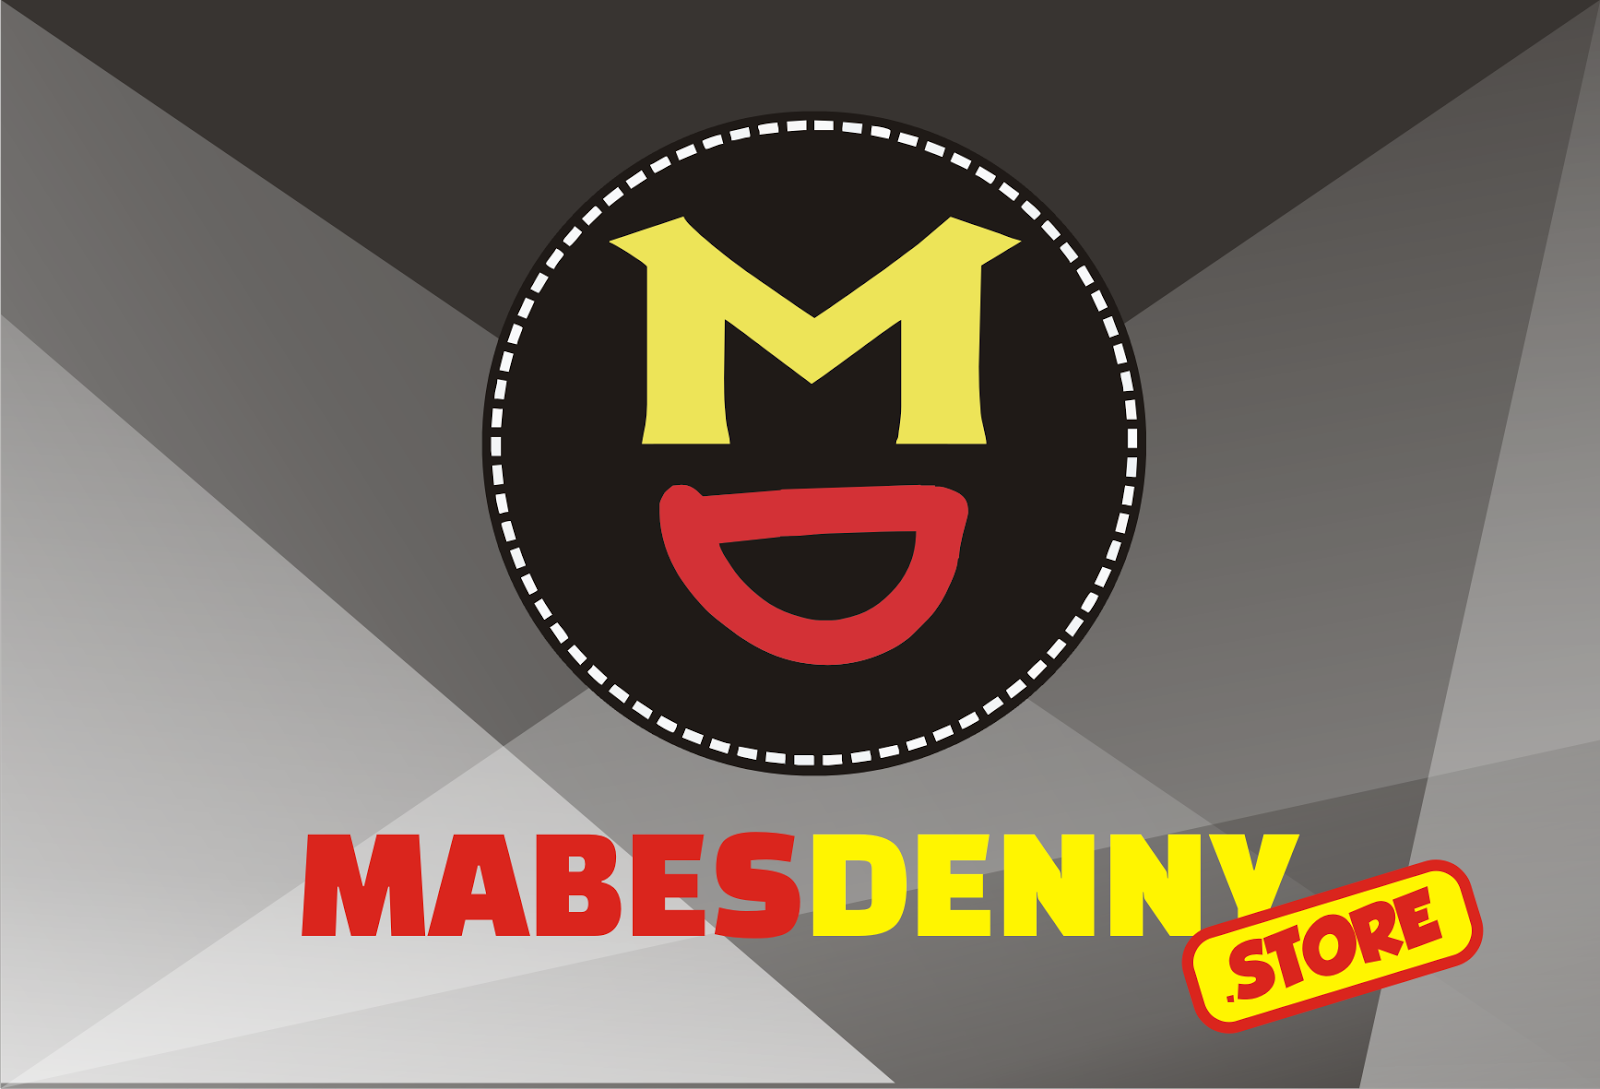 Mabesdenny Store